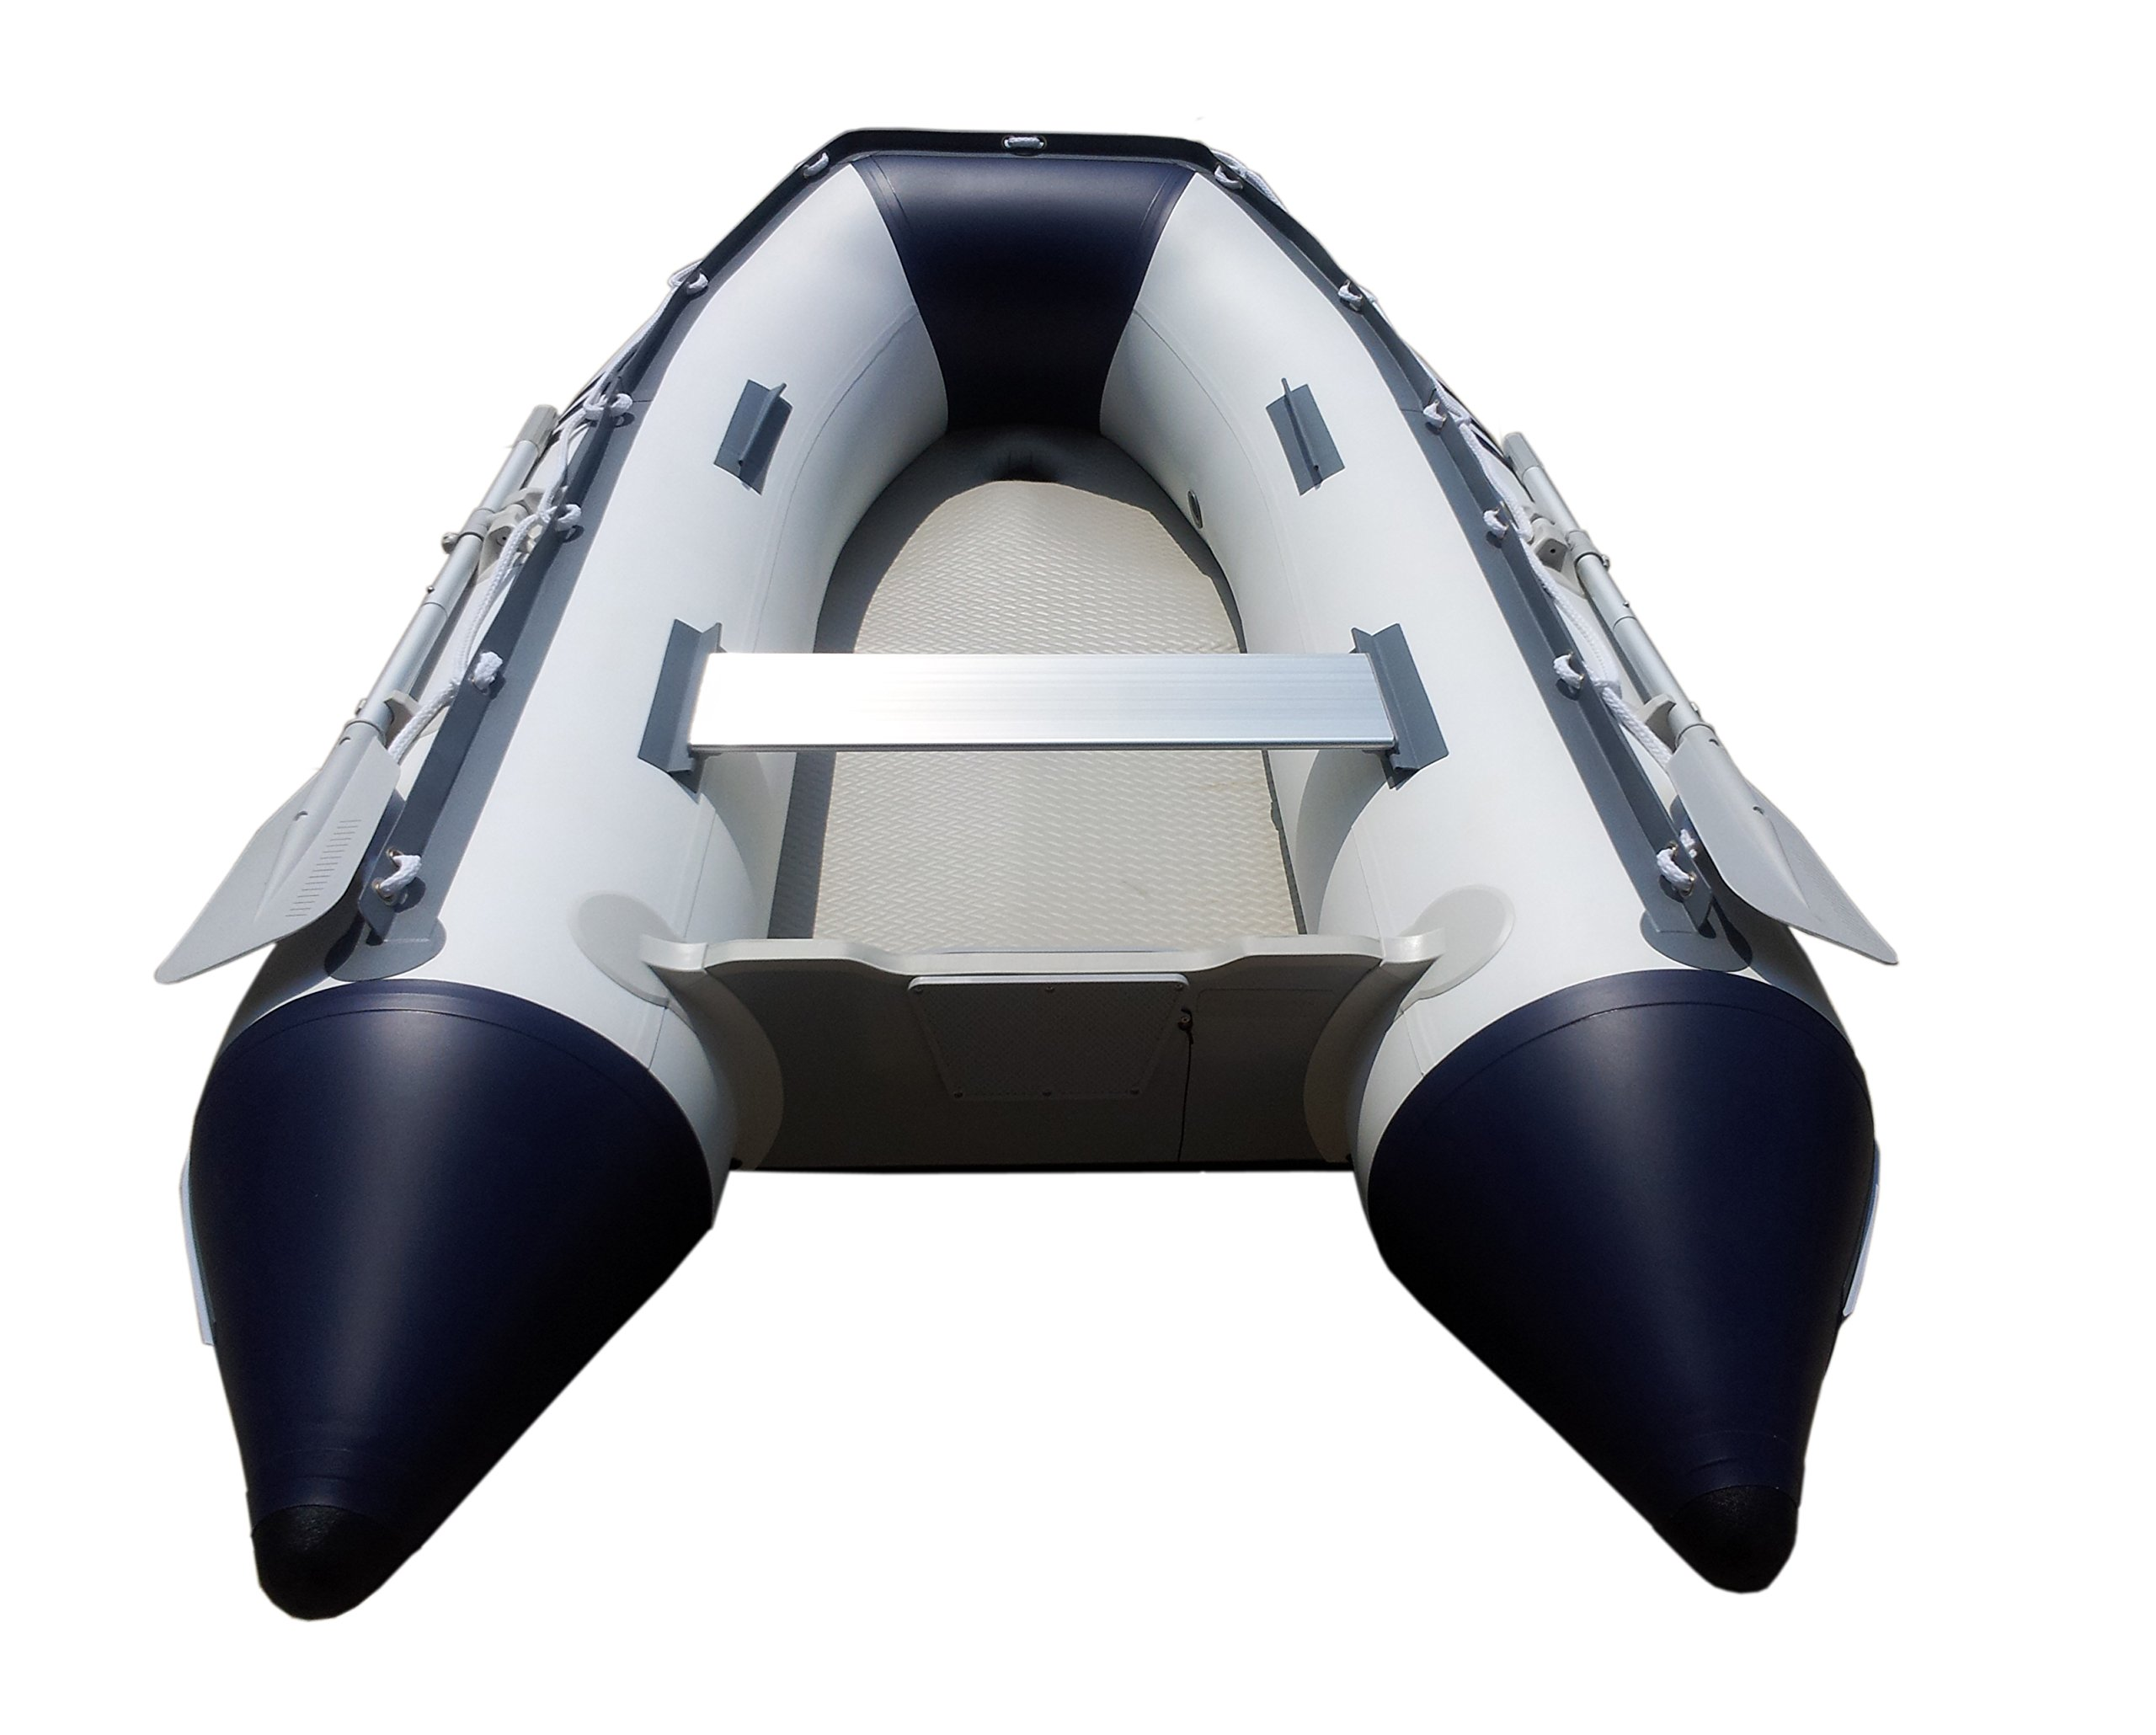 Newport Vessels Seascape Air Mat Floor Inflatable Tender Dinghy Boat (9-Feet) by Newport Vessels